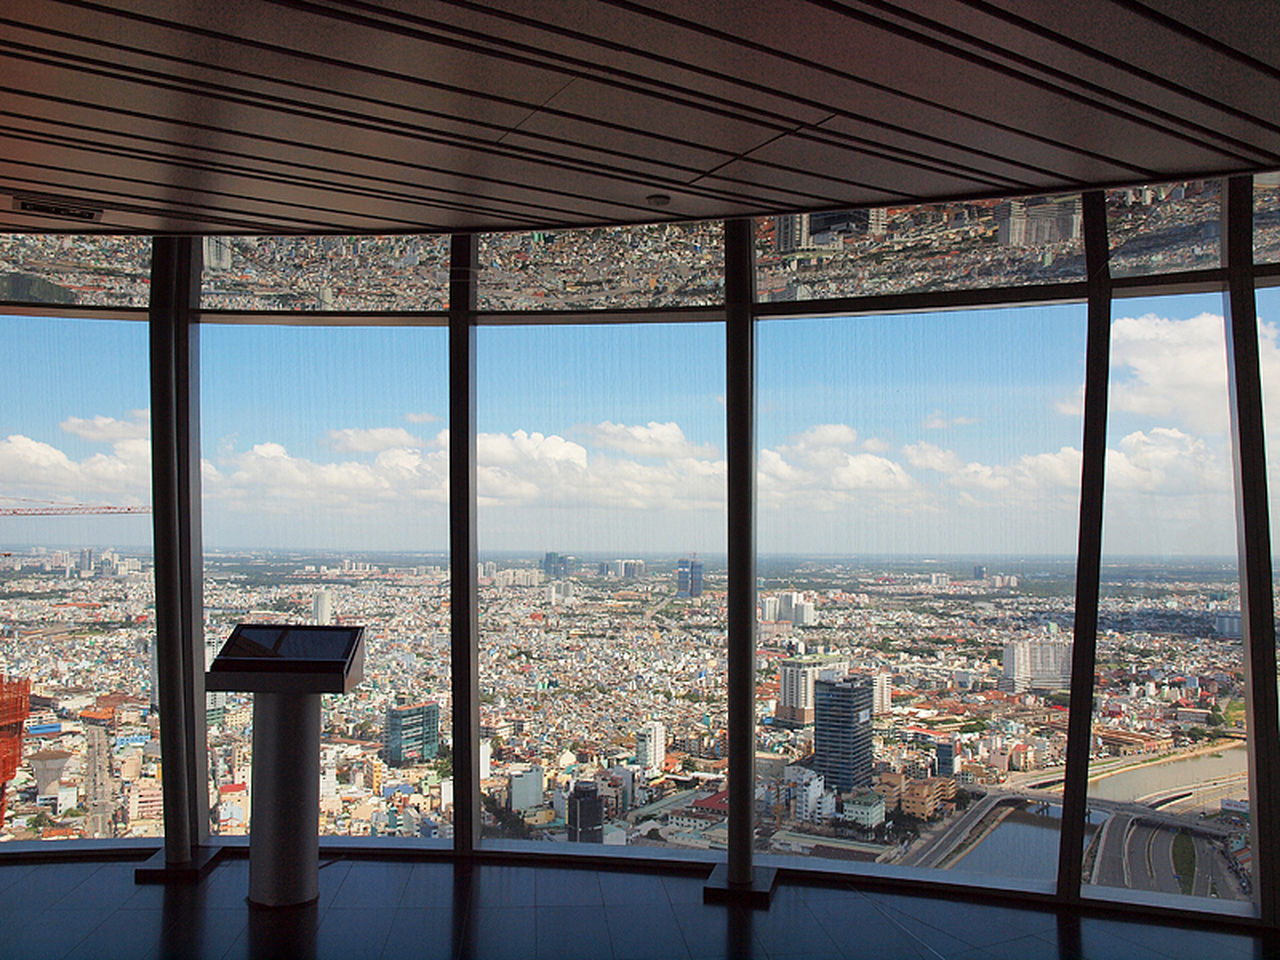 cityscape, window, sky, built structure, architecture, city, day, indoors, no people, cloud - sky, nature, sea, mountain, coin-operated binoculars, travel destinations, scenics, water, building exterior